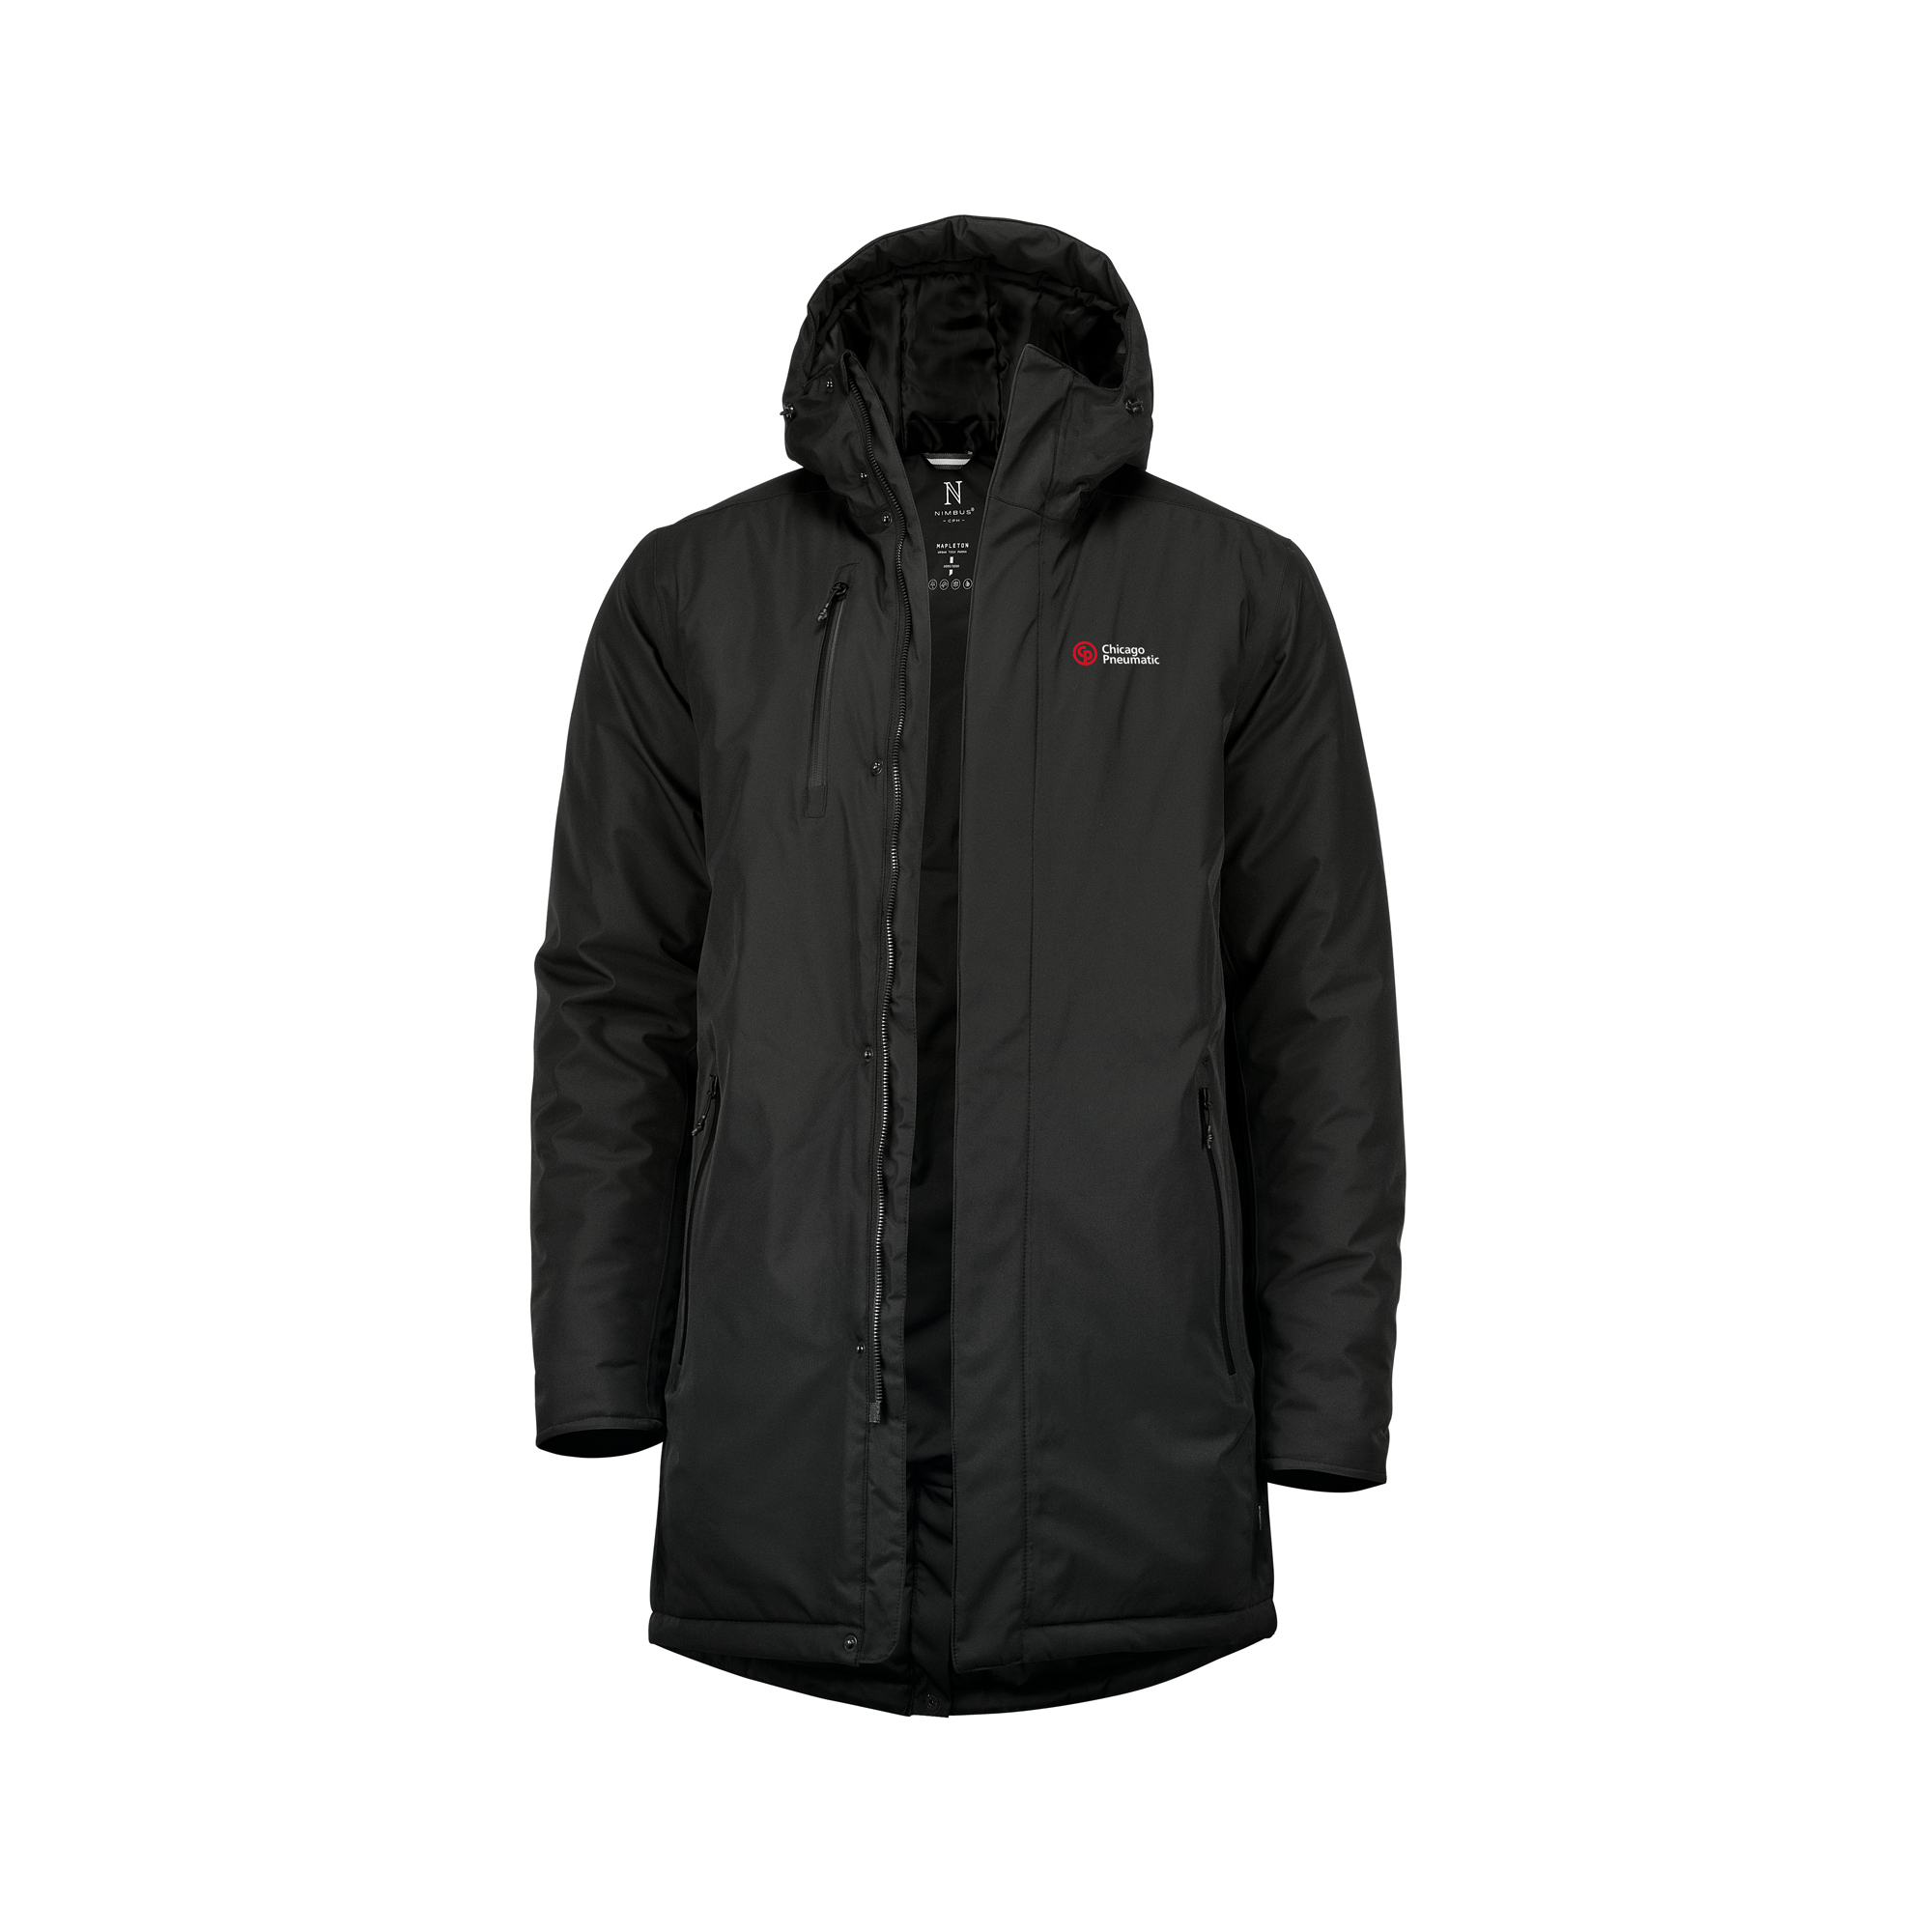 Mapleton is the all-winter style conscious parka jacket, filled with many clean and functional details that adds elegance to a classic casual-business look.